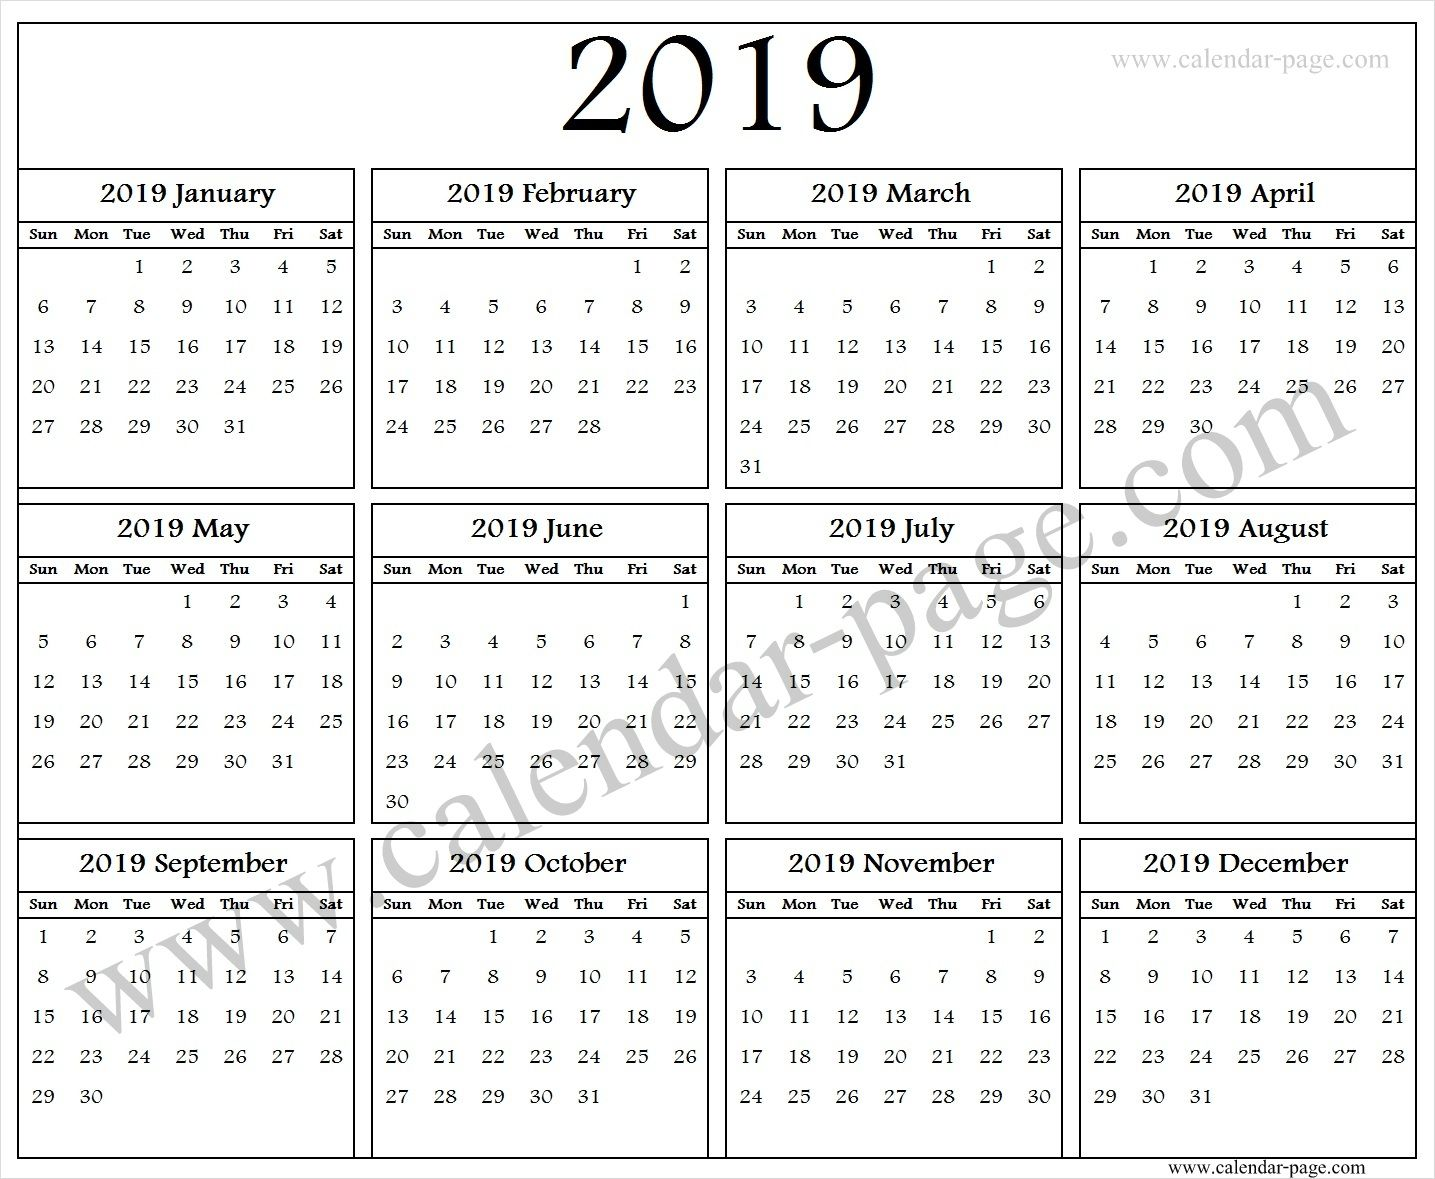 2019 English Calendar Blank Calendar 2019 Image Quarterly